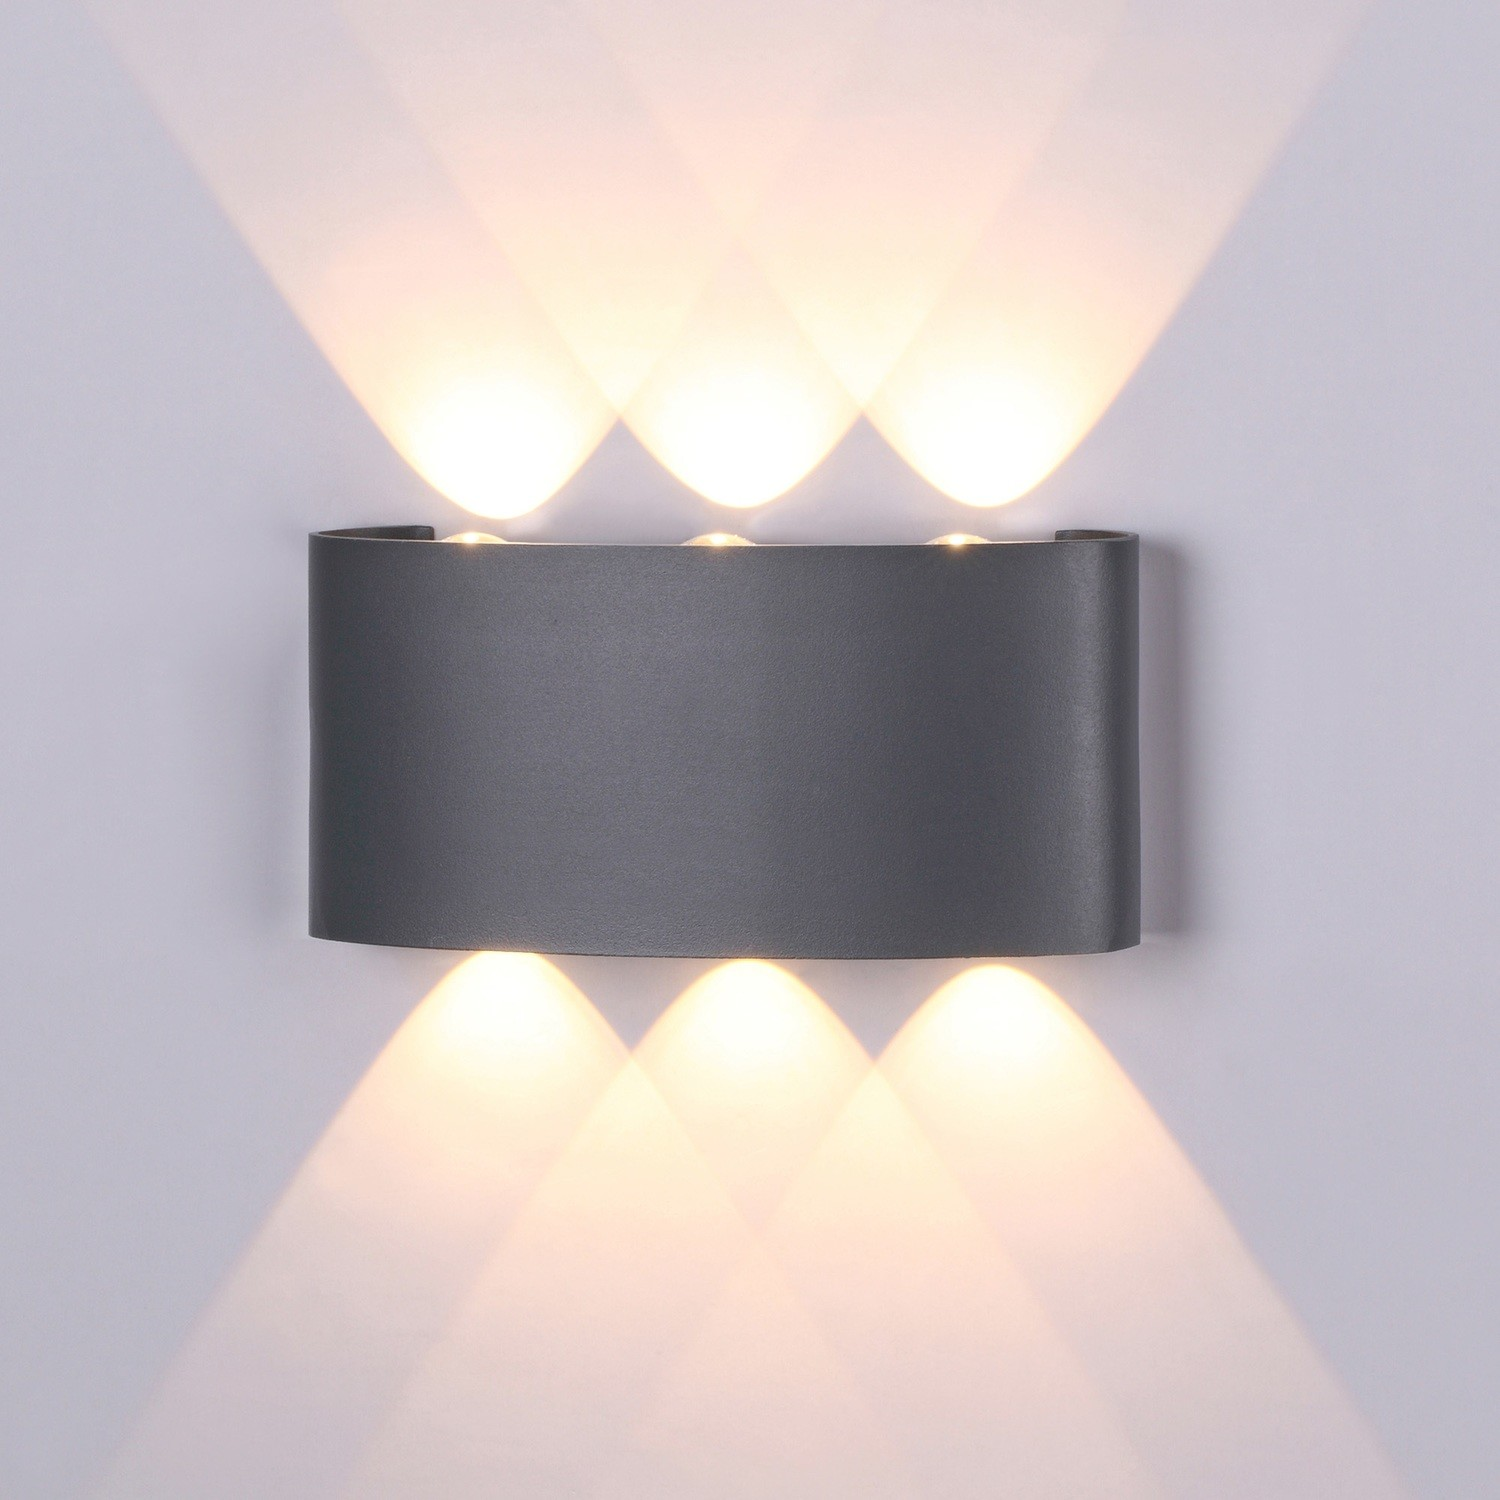 Symmetry Wall Lamp, 6W LED, 3000K, 450lm, IP54, Anthracite